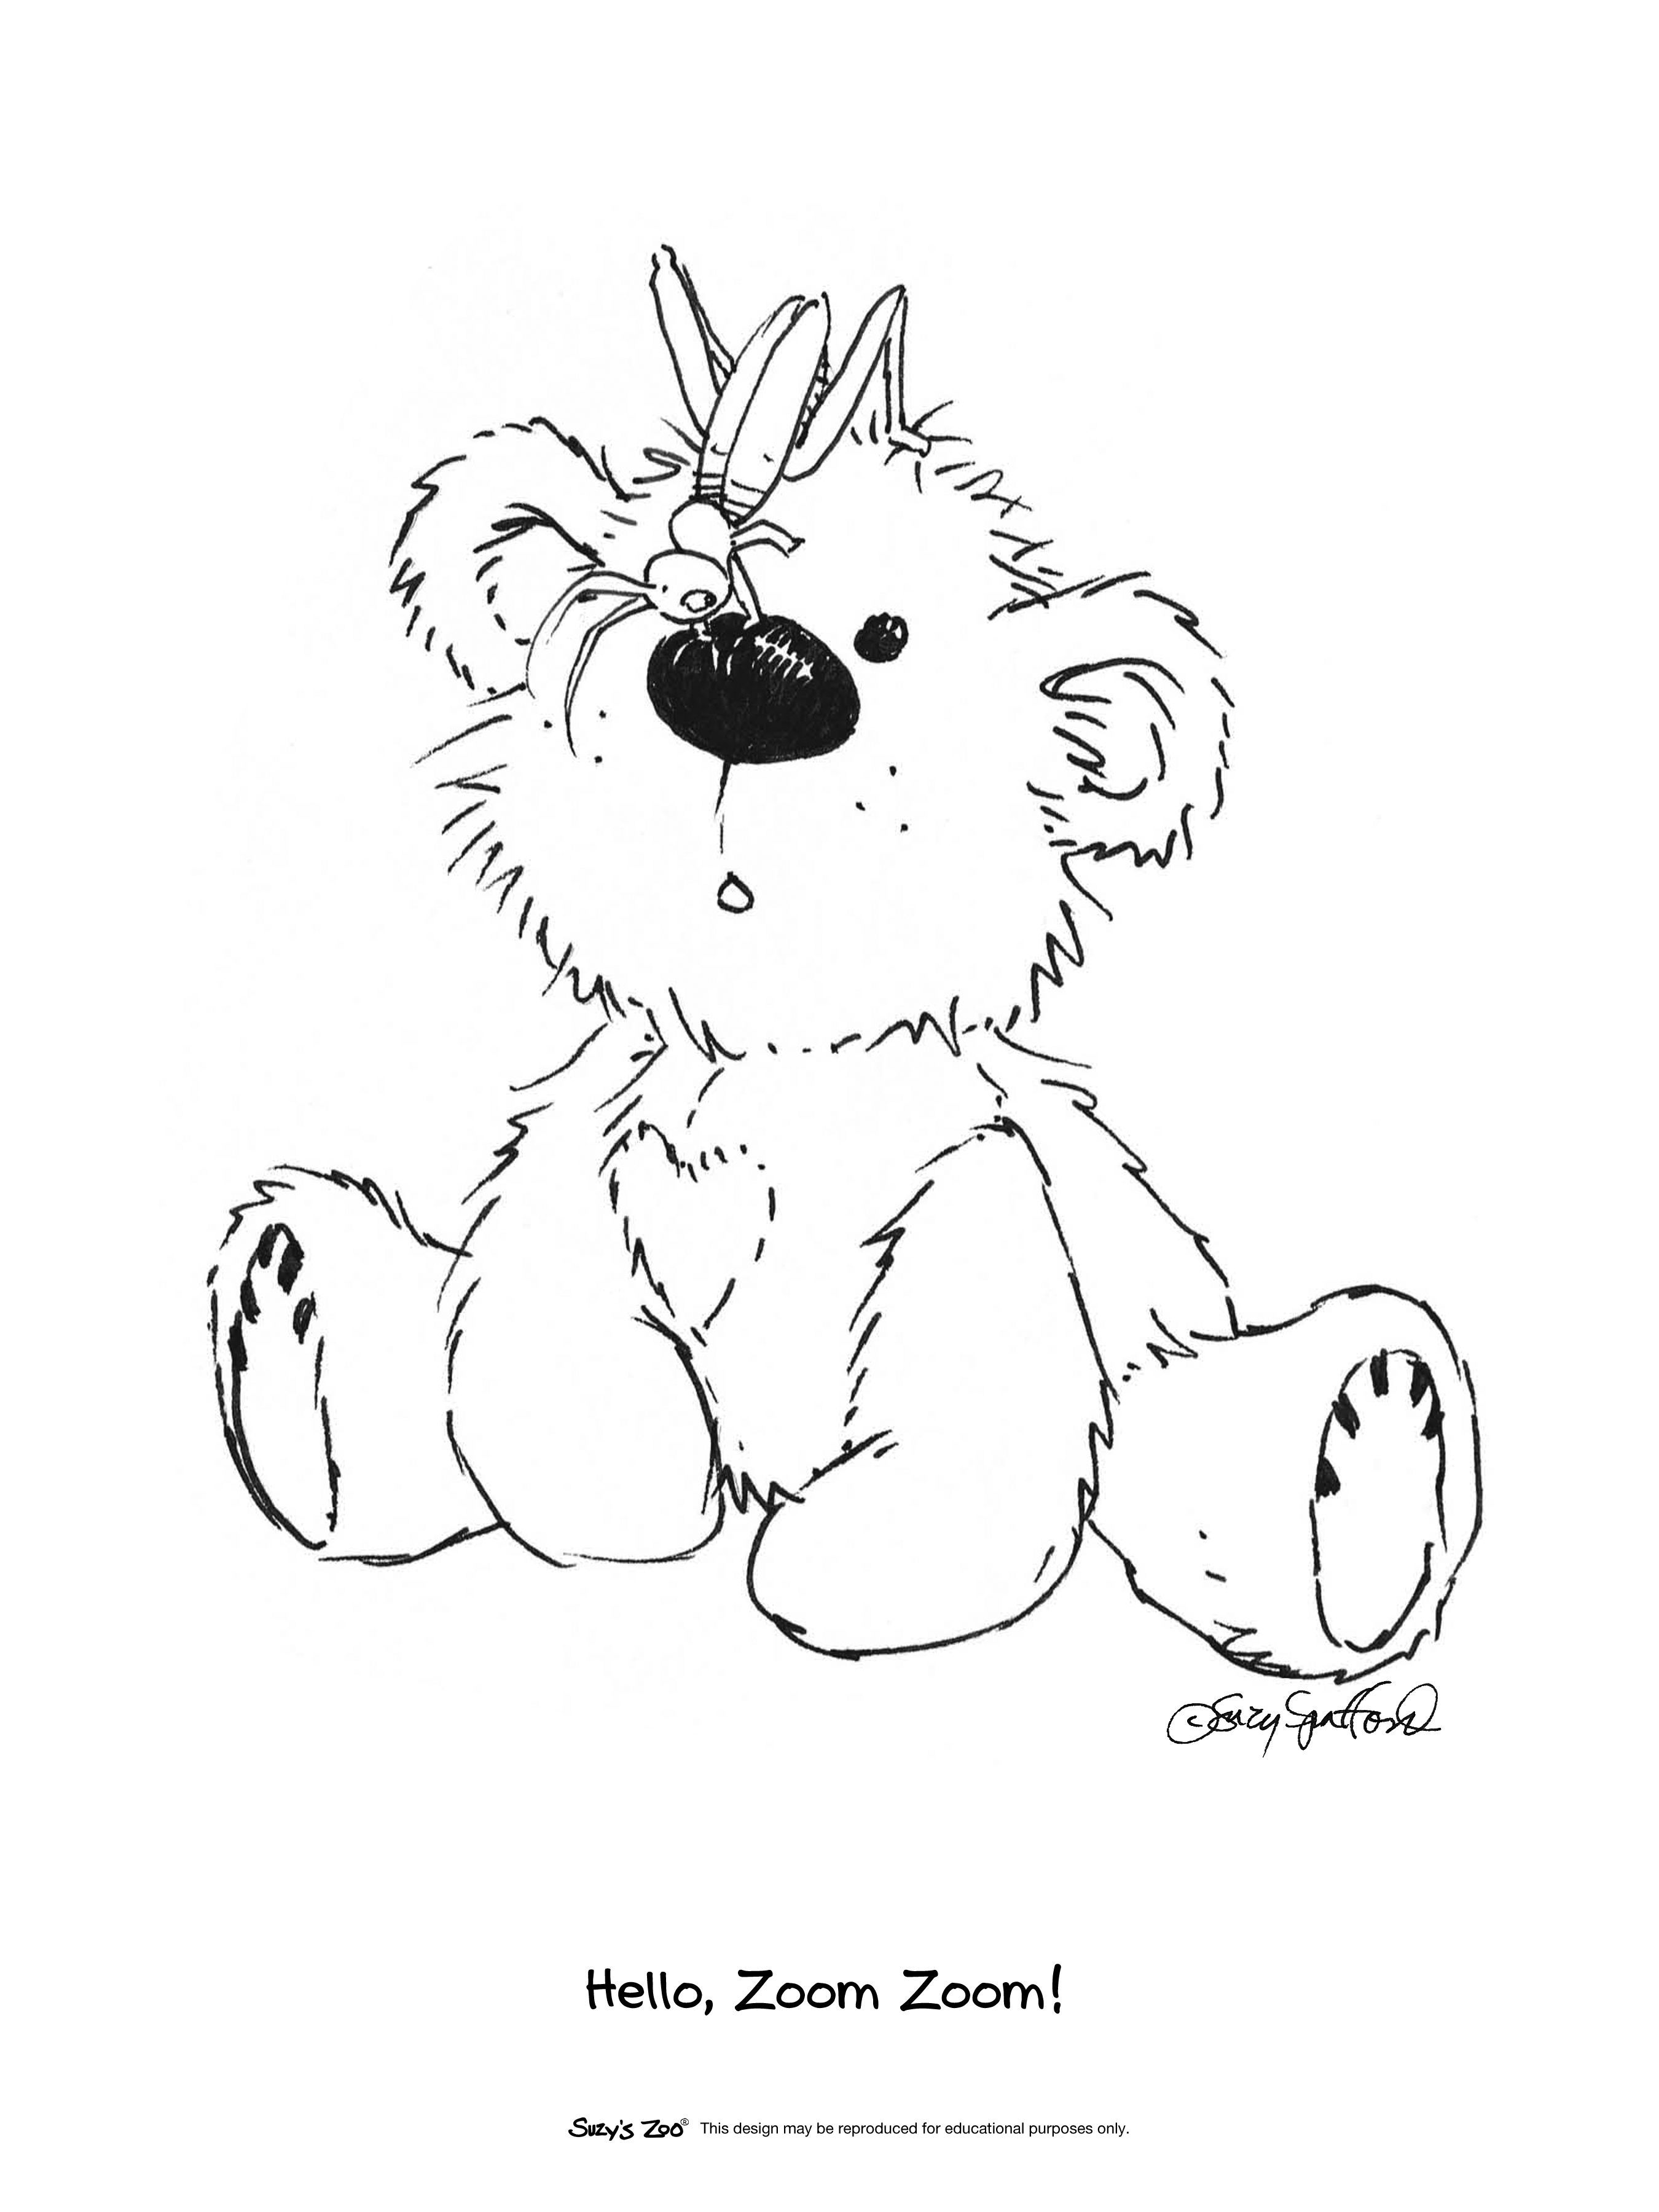 cute zoo coloring pages cute giraffe coloring pages giraffe coloring pages zoo cute coloring pages zoo